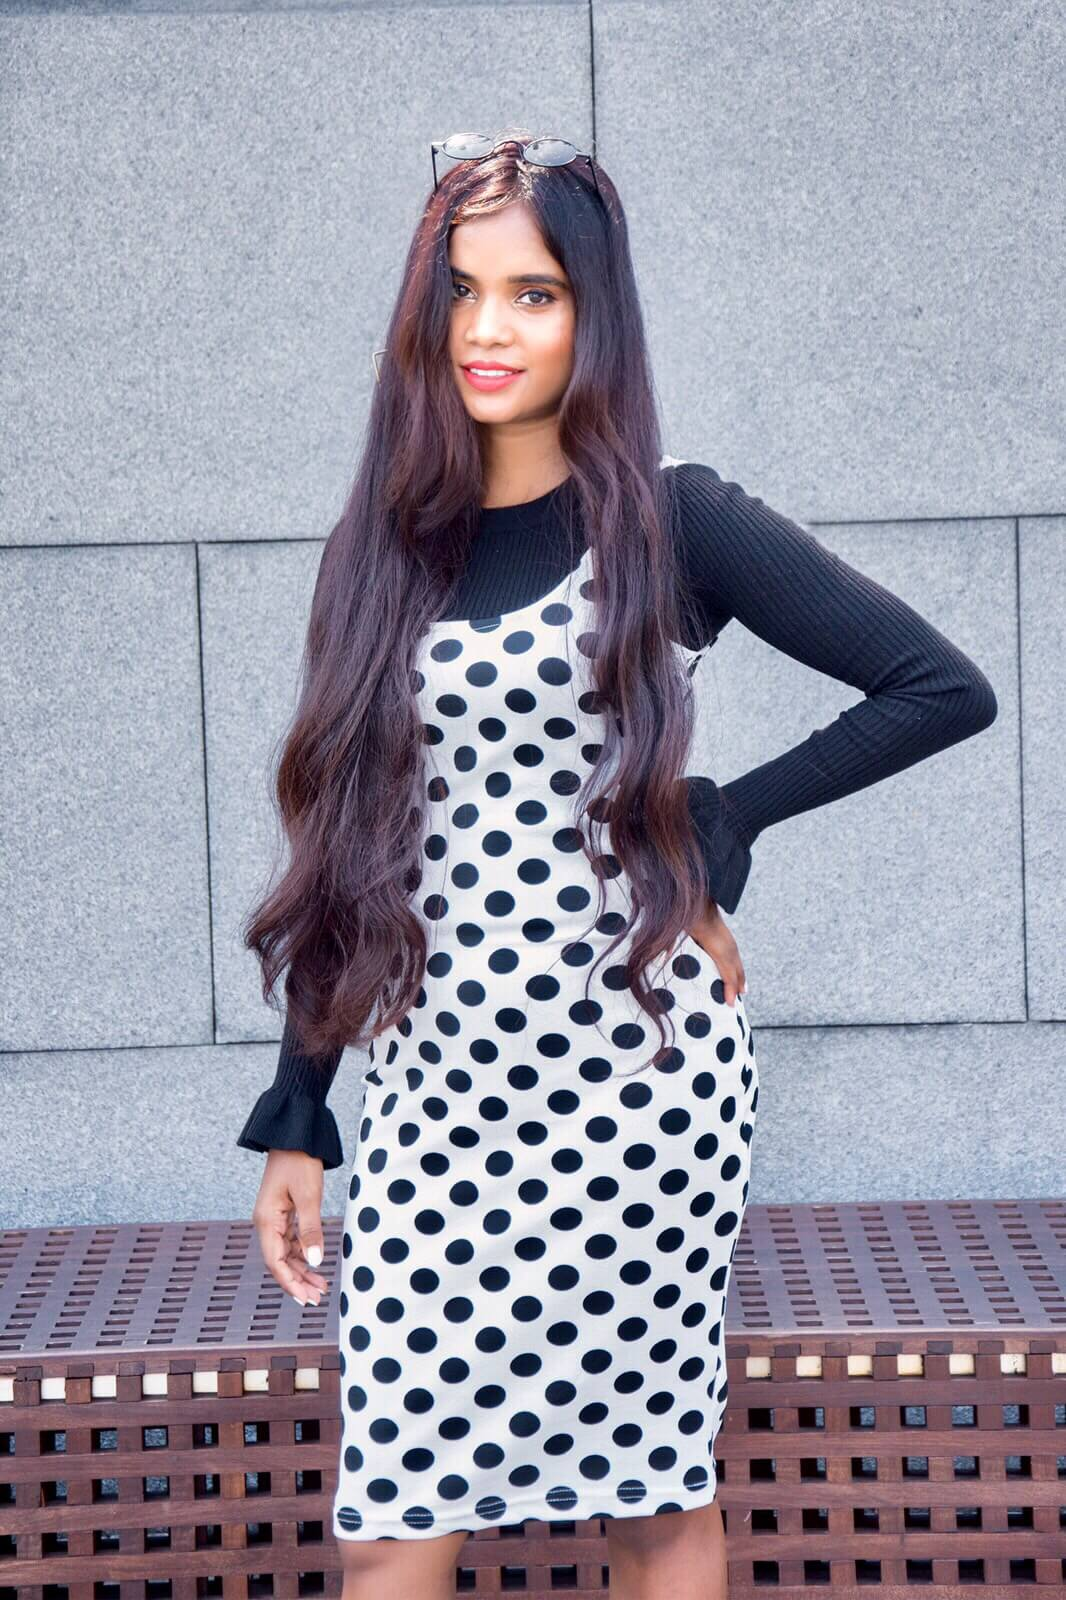 polka dot dress and ruffle blouse